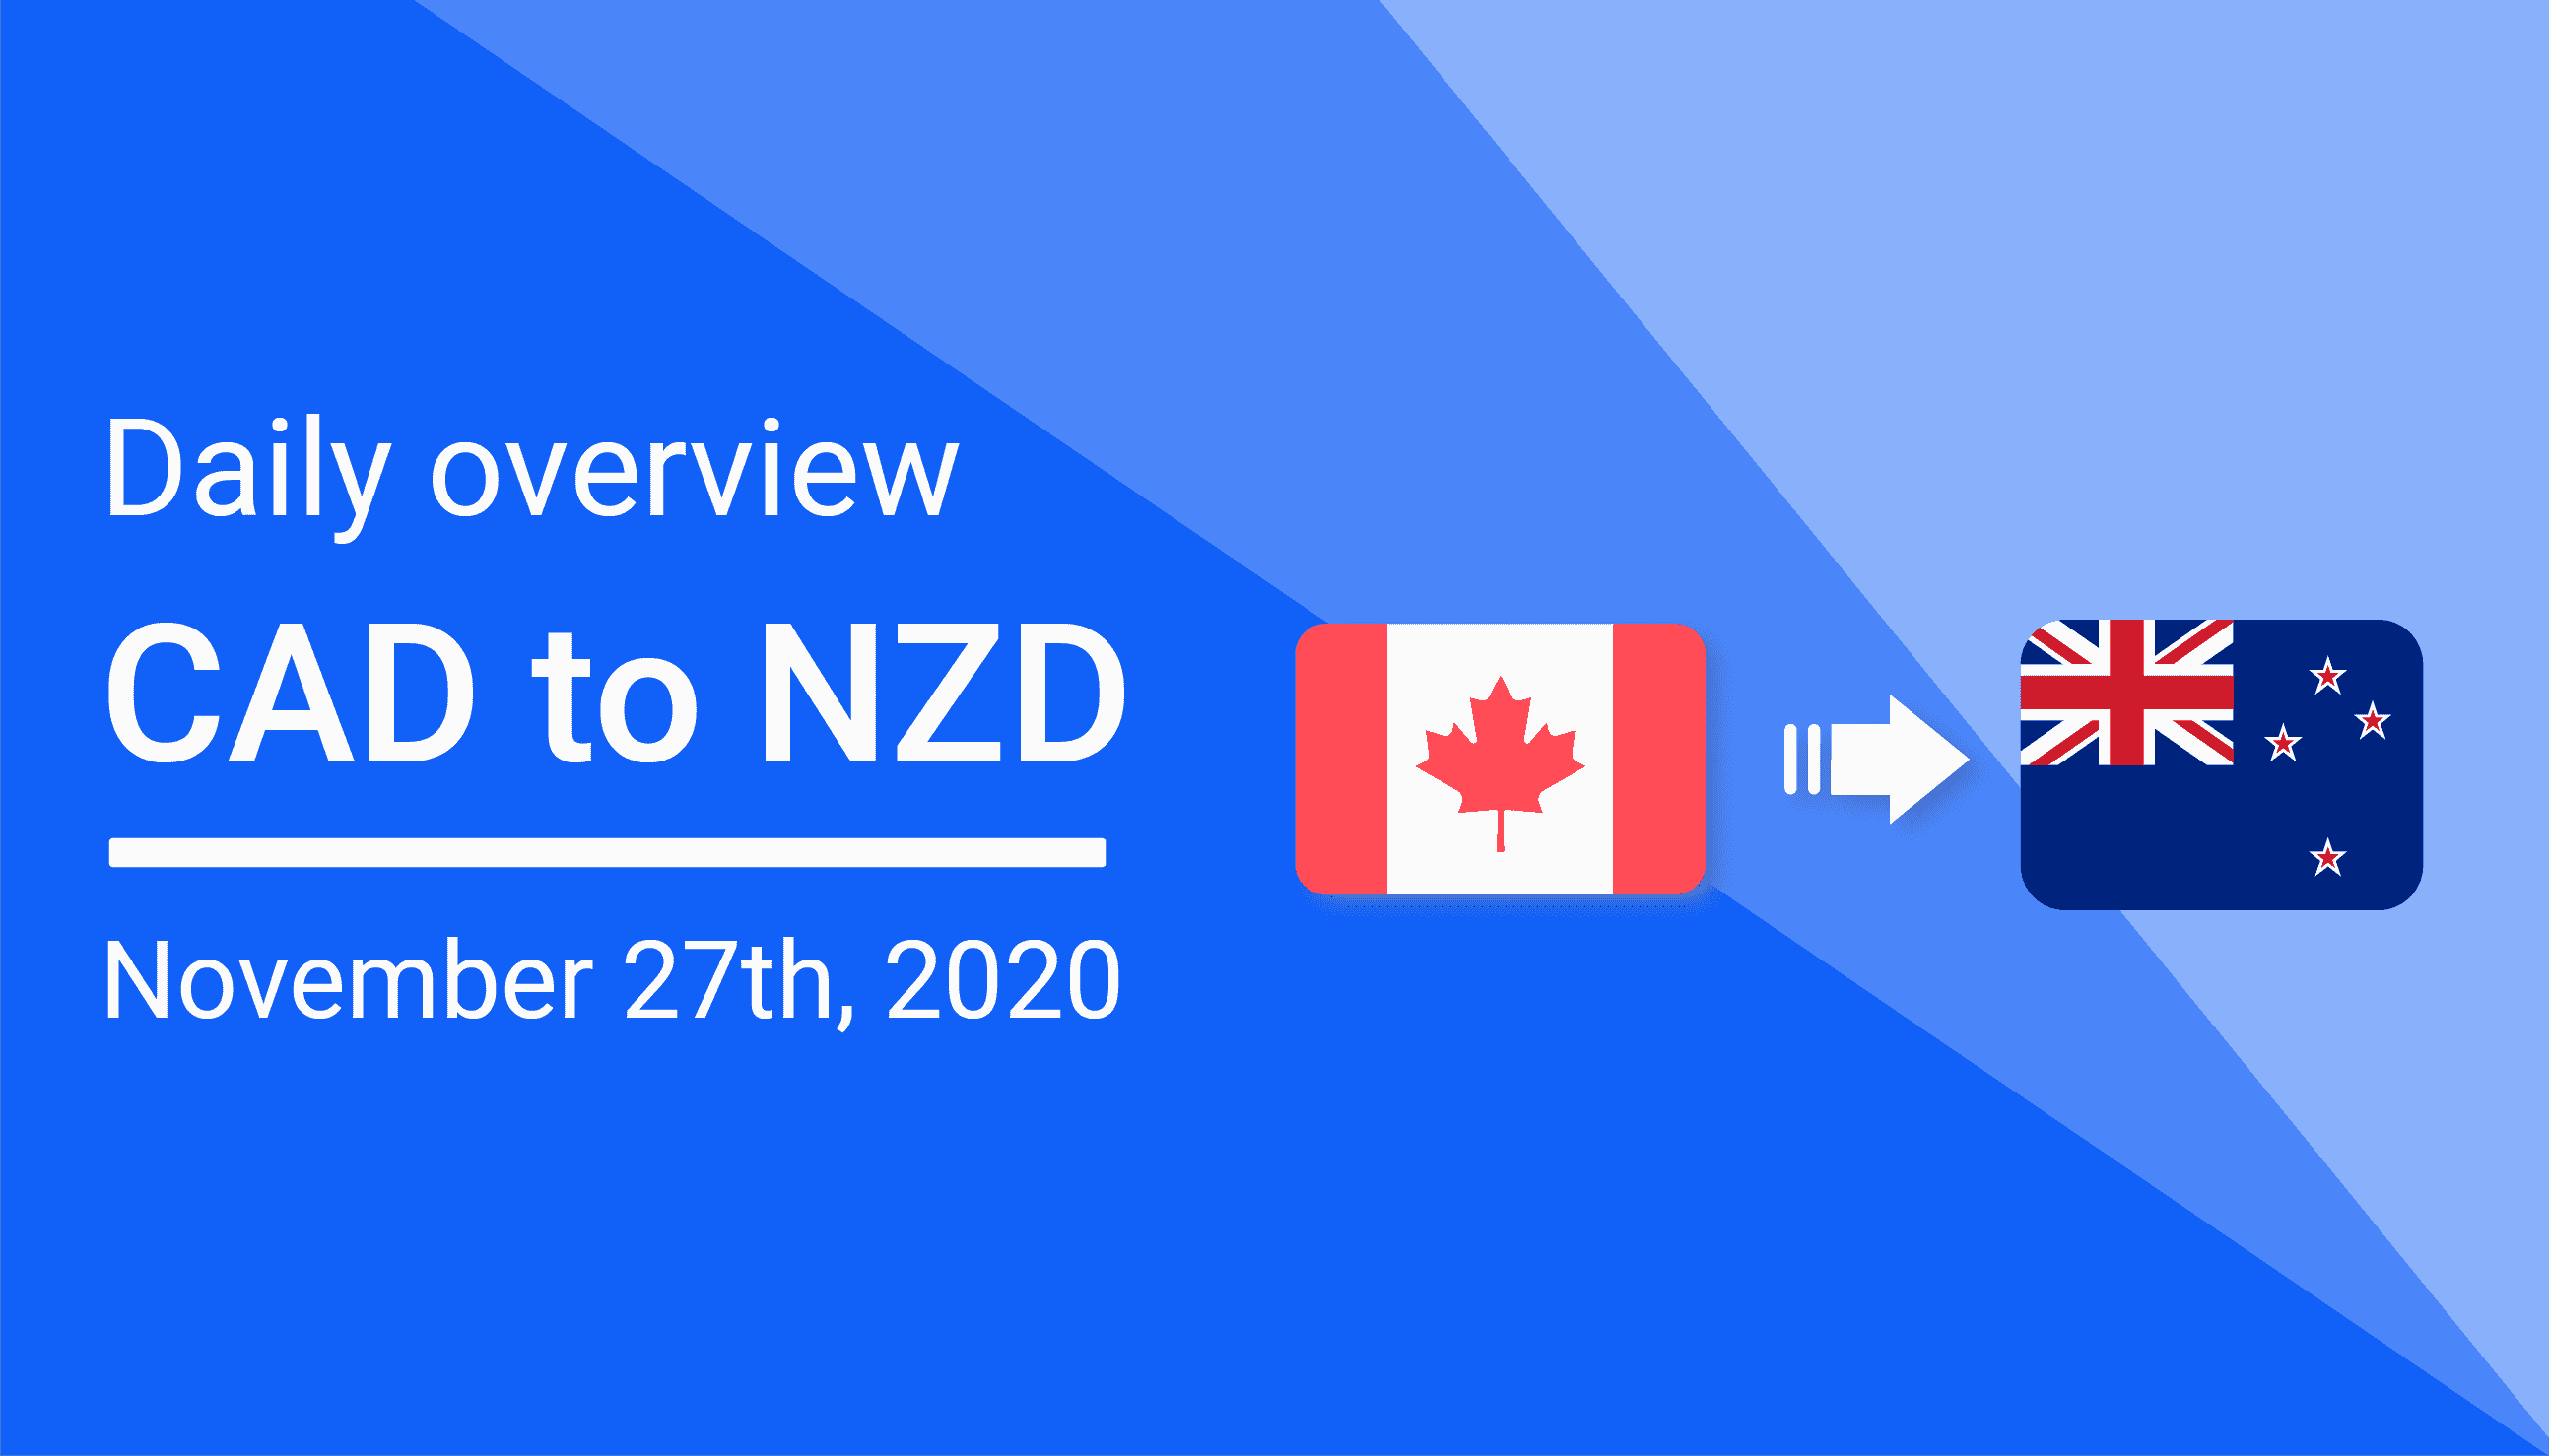 CAD to NZD Daily Overview: November 27th